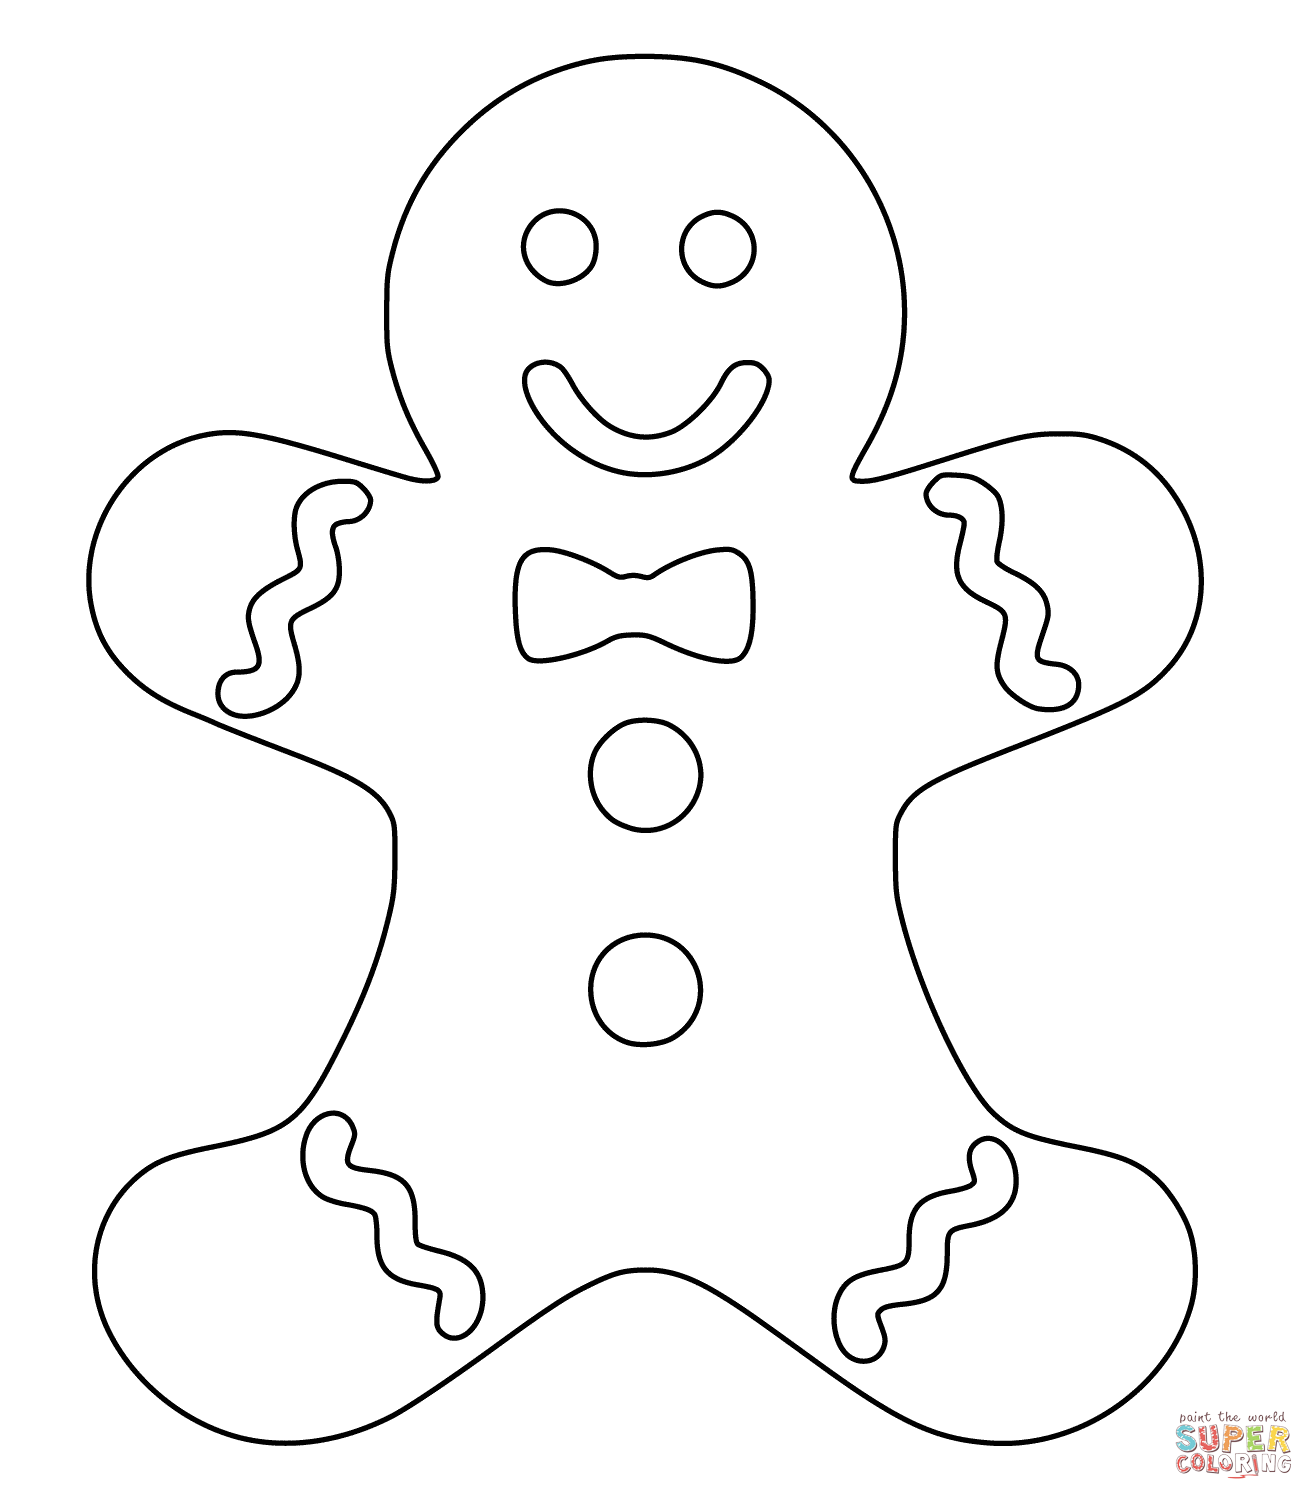 blank gingerbread man coloring page blank gingerbread man coloring page from christmas man gingerbread blank coloring page